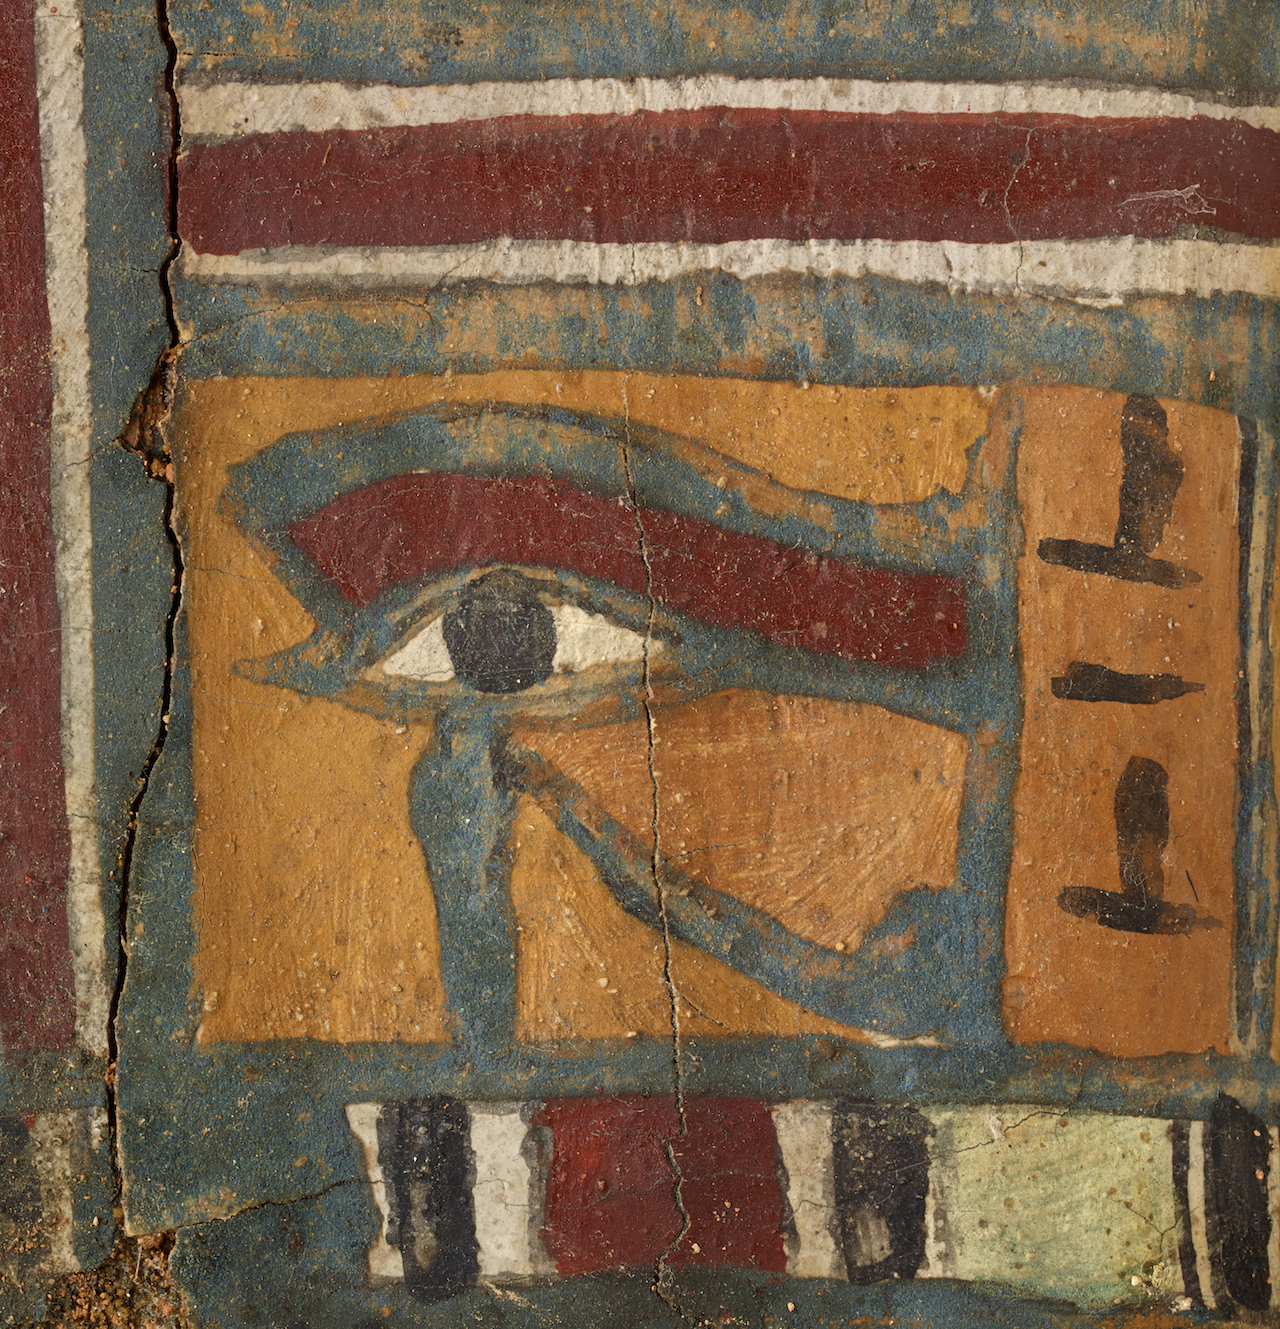 Eye of Horus, the falcon god, on a detail of an ancient Egyptian coffin (© 2015 The Field Museum, photo by John Weinstein)